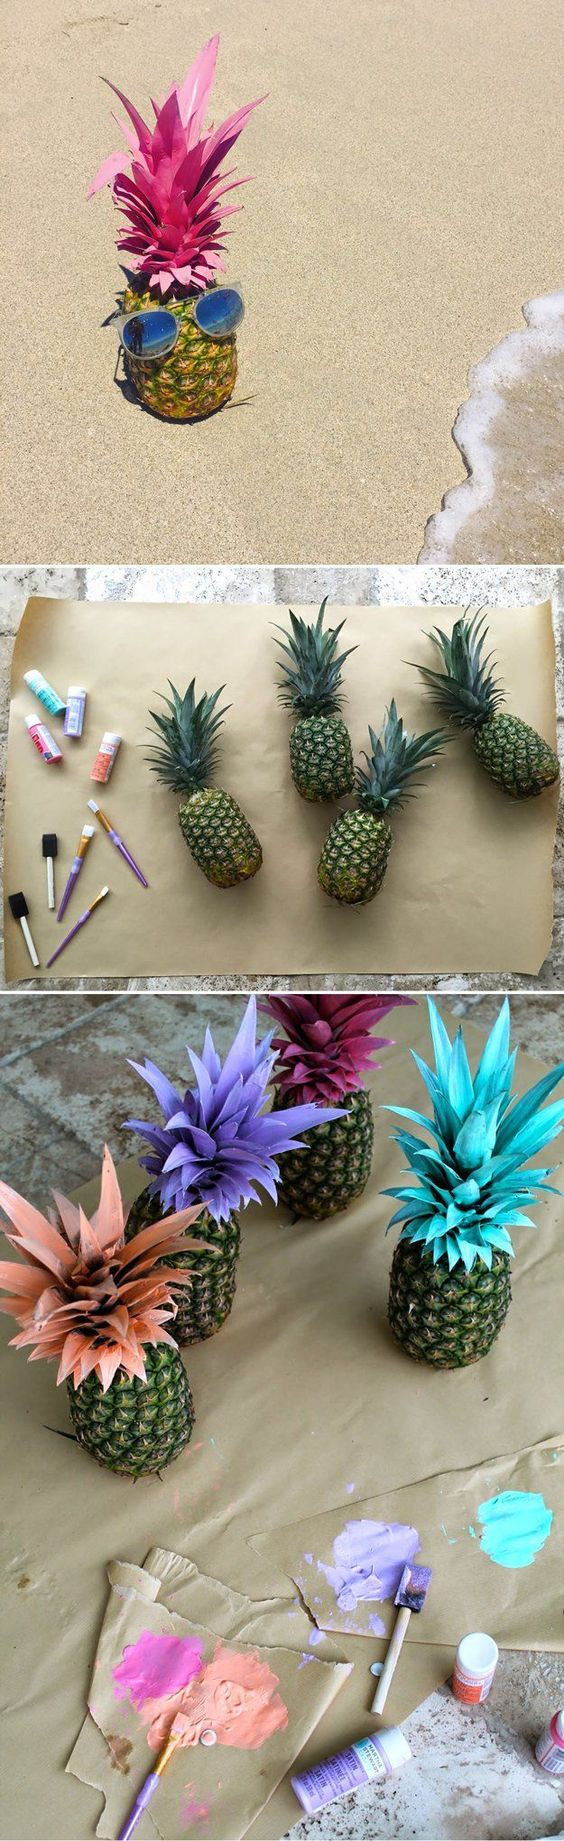 Cool and Cheap DIY Beach Party Decoration | Pretty Painted Pineapples by DIY Ready at http://diyready.com/amazing-diy-beach-party-ideas/